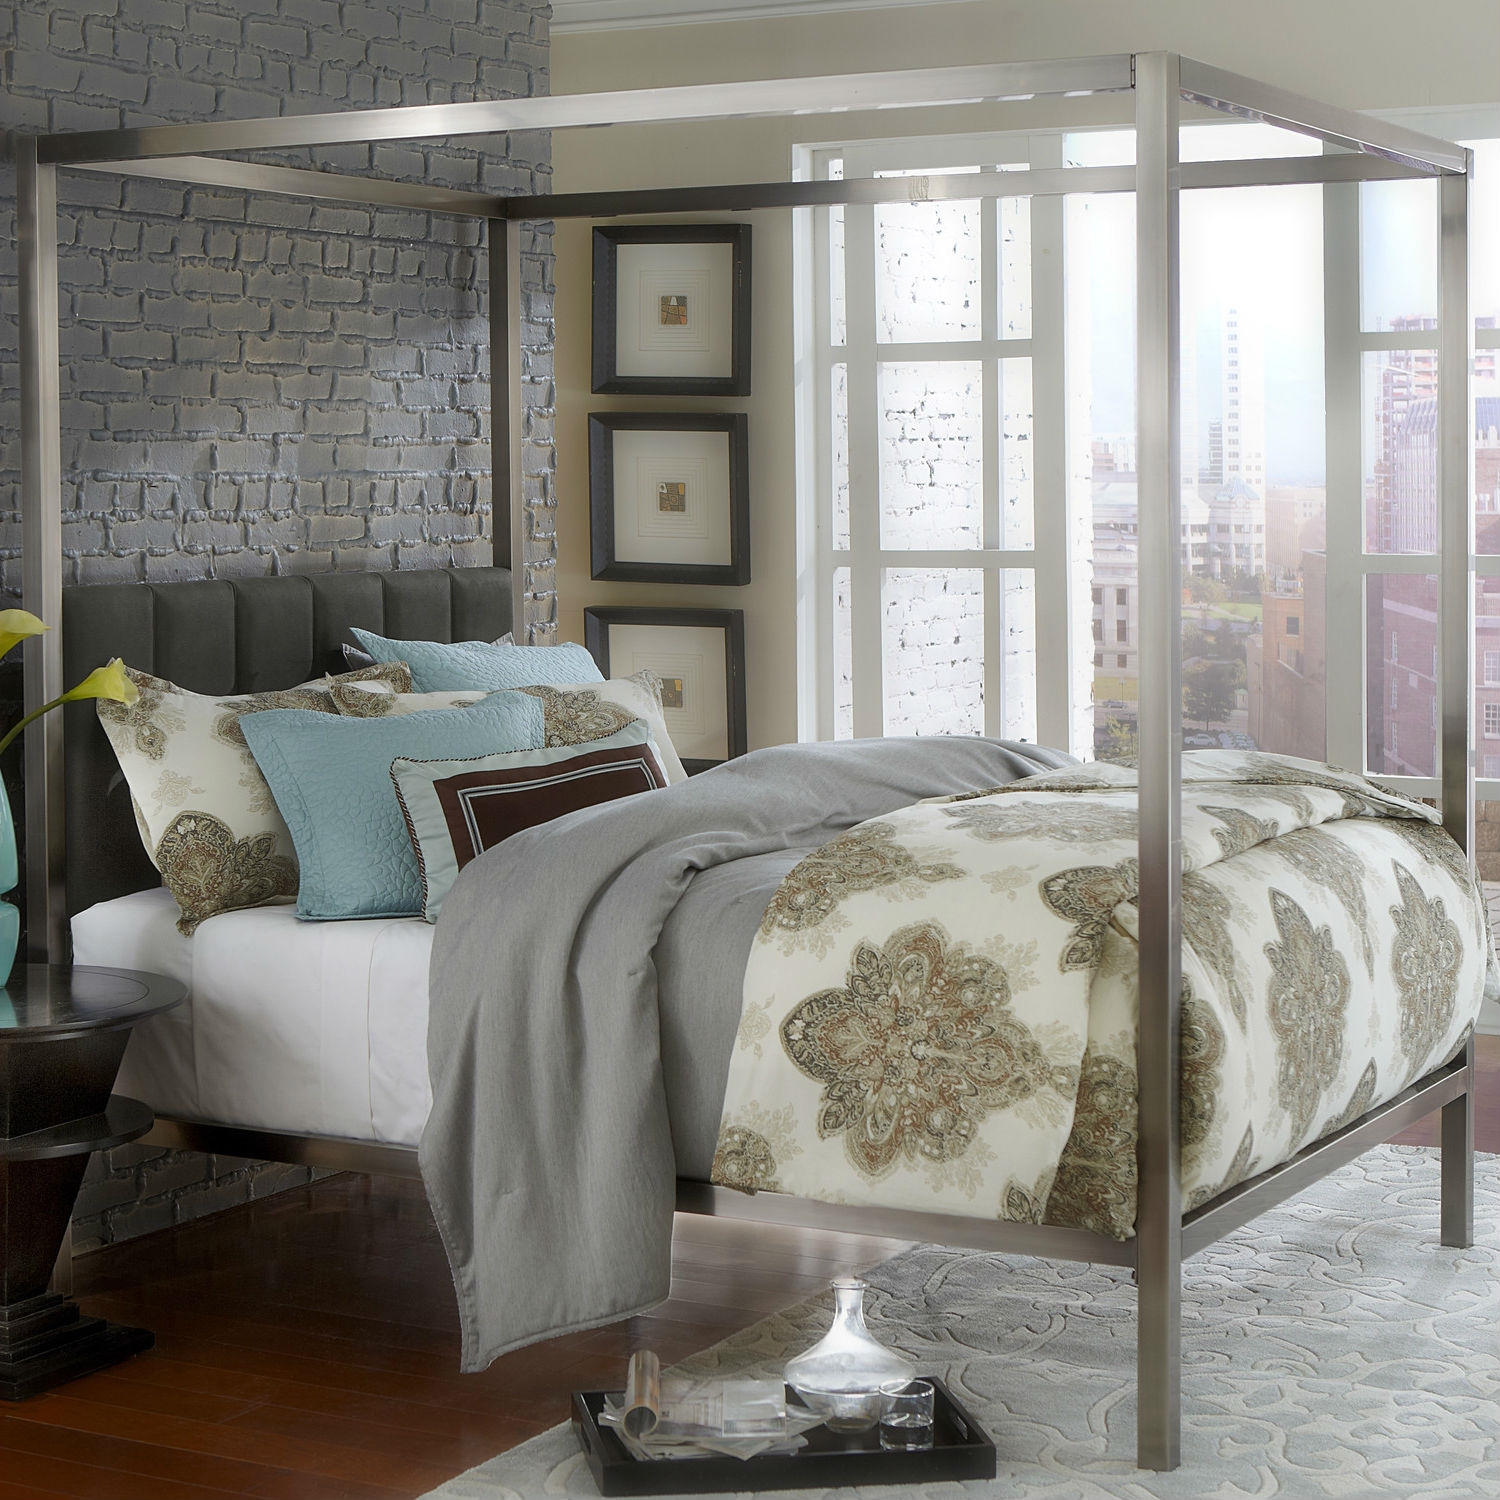 gray theme bedroom color king size canopy bed & Bedroom: Unique King Size Canopy Bed With Rug And Sheets